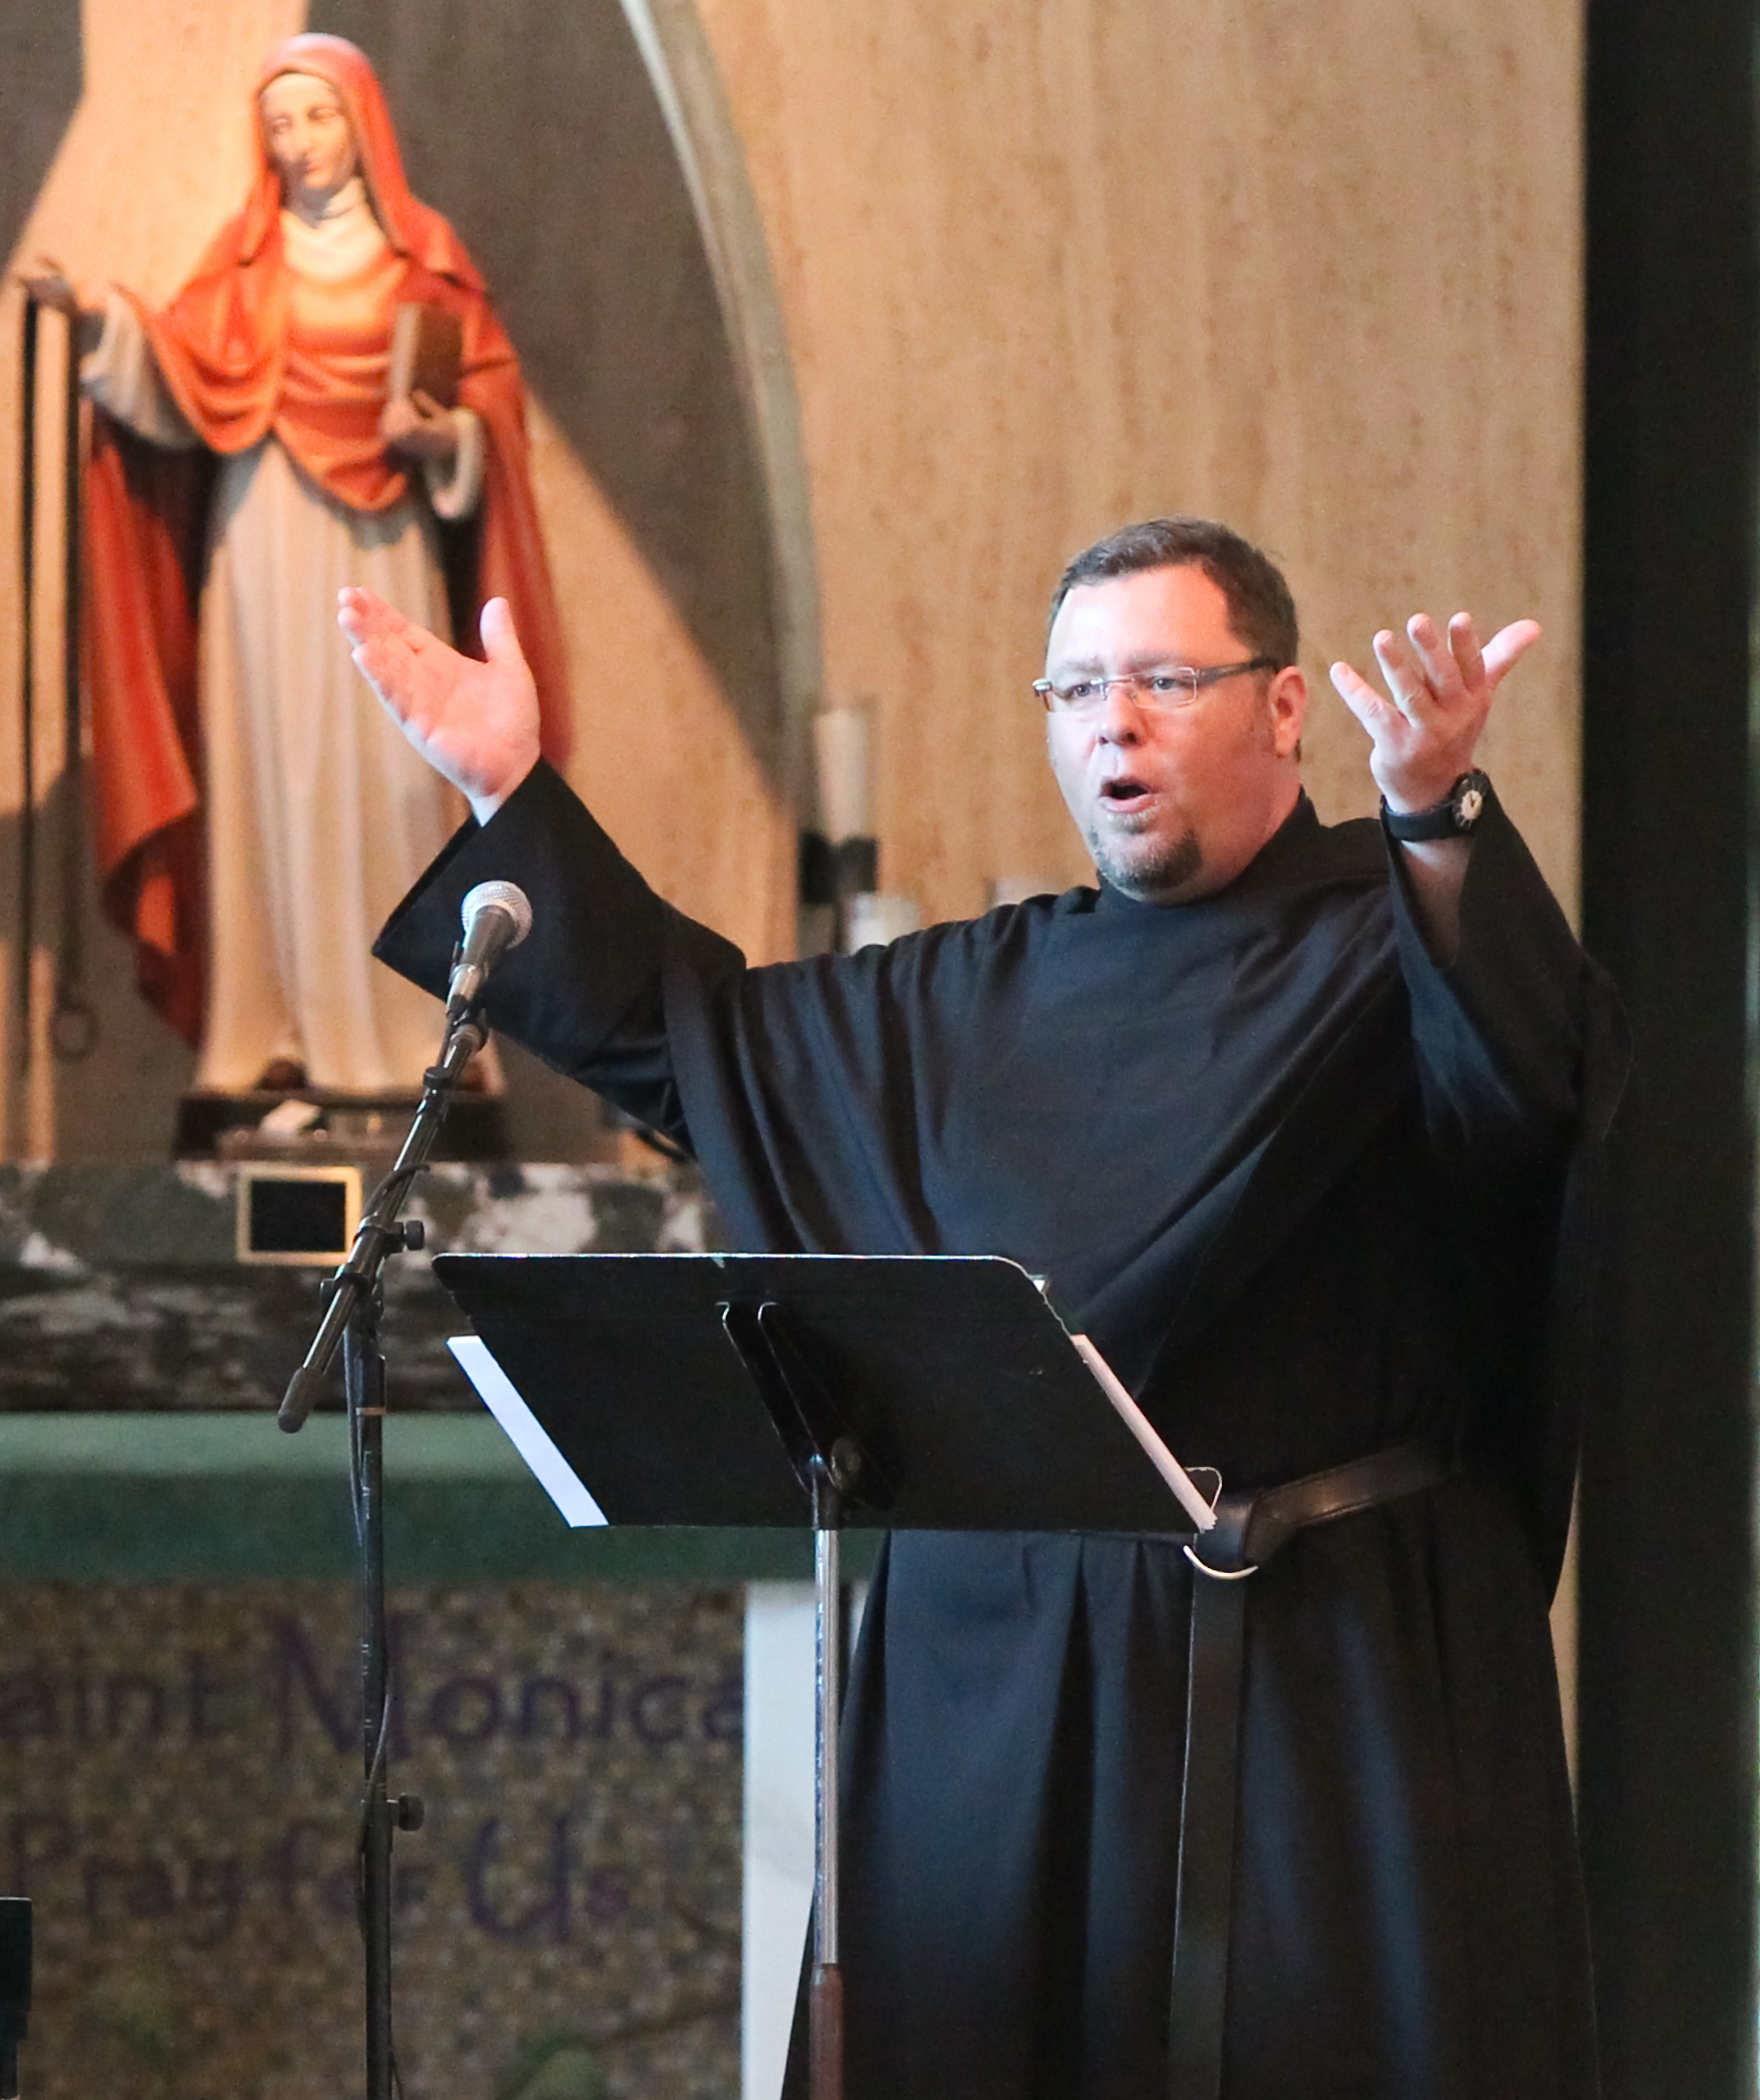 Rev. Richard Young, O.S.A. is the Director of Augustinian Mission at St. Rita of Cascia High School in Chicago, IL